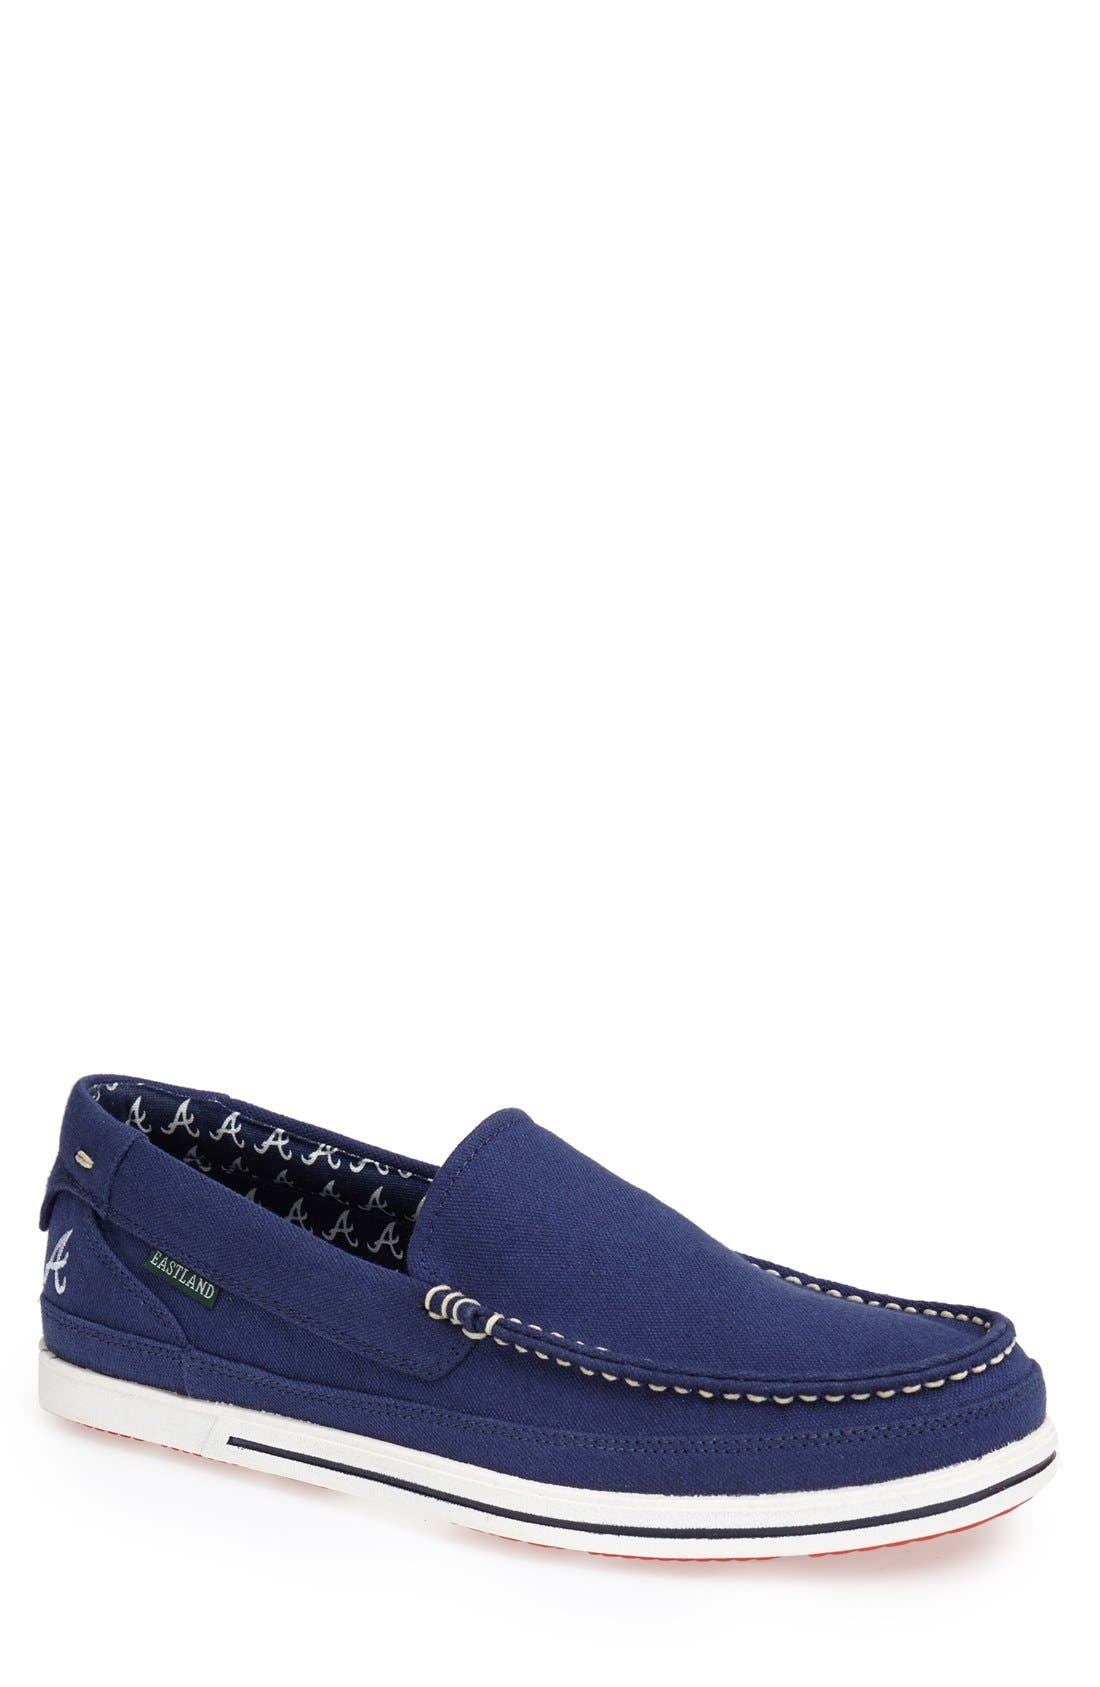 EASTLAND 'Sheffield - MLB' Slip-On